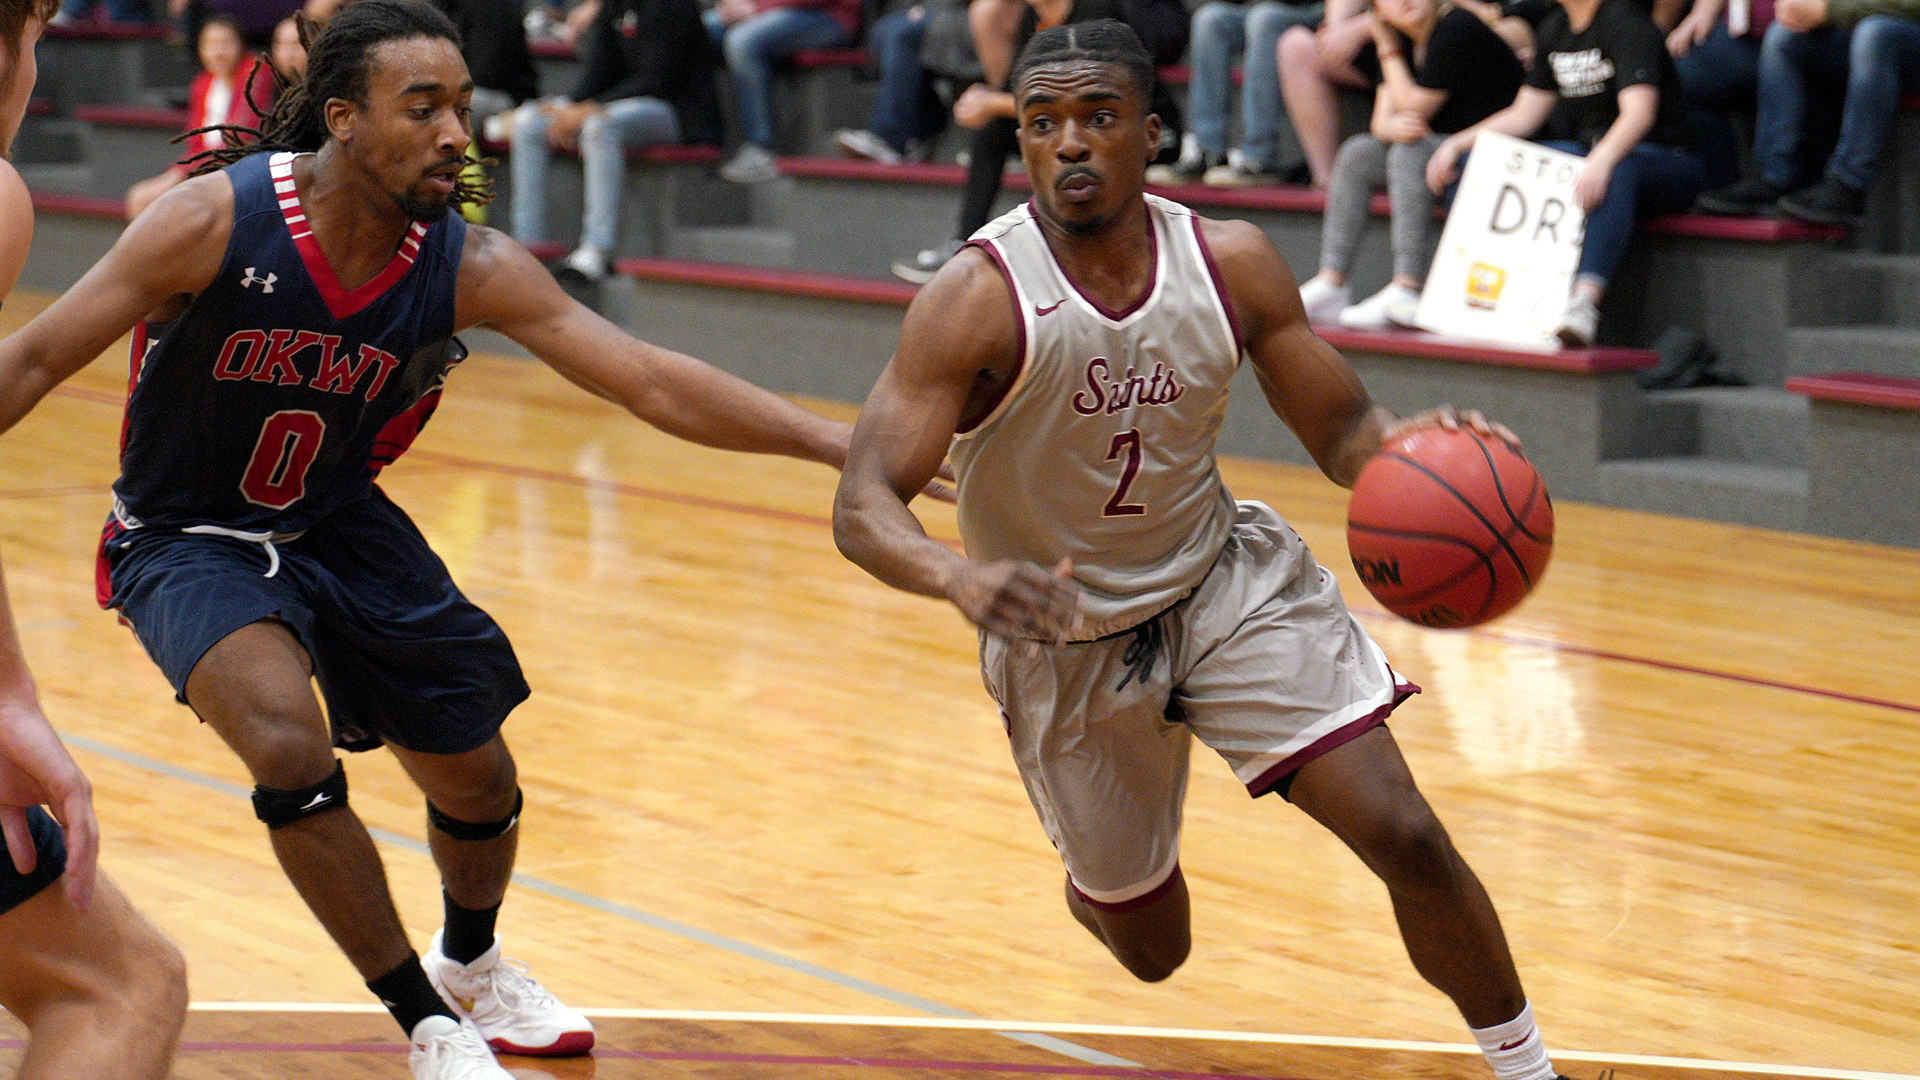 CCCB senior Josh Crawford scored four points and handed out three assists in the Saints 75-69 win over Lincoln Christian University on Tuesday.